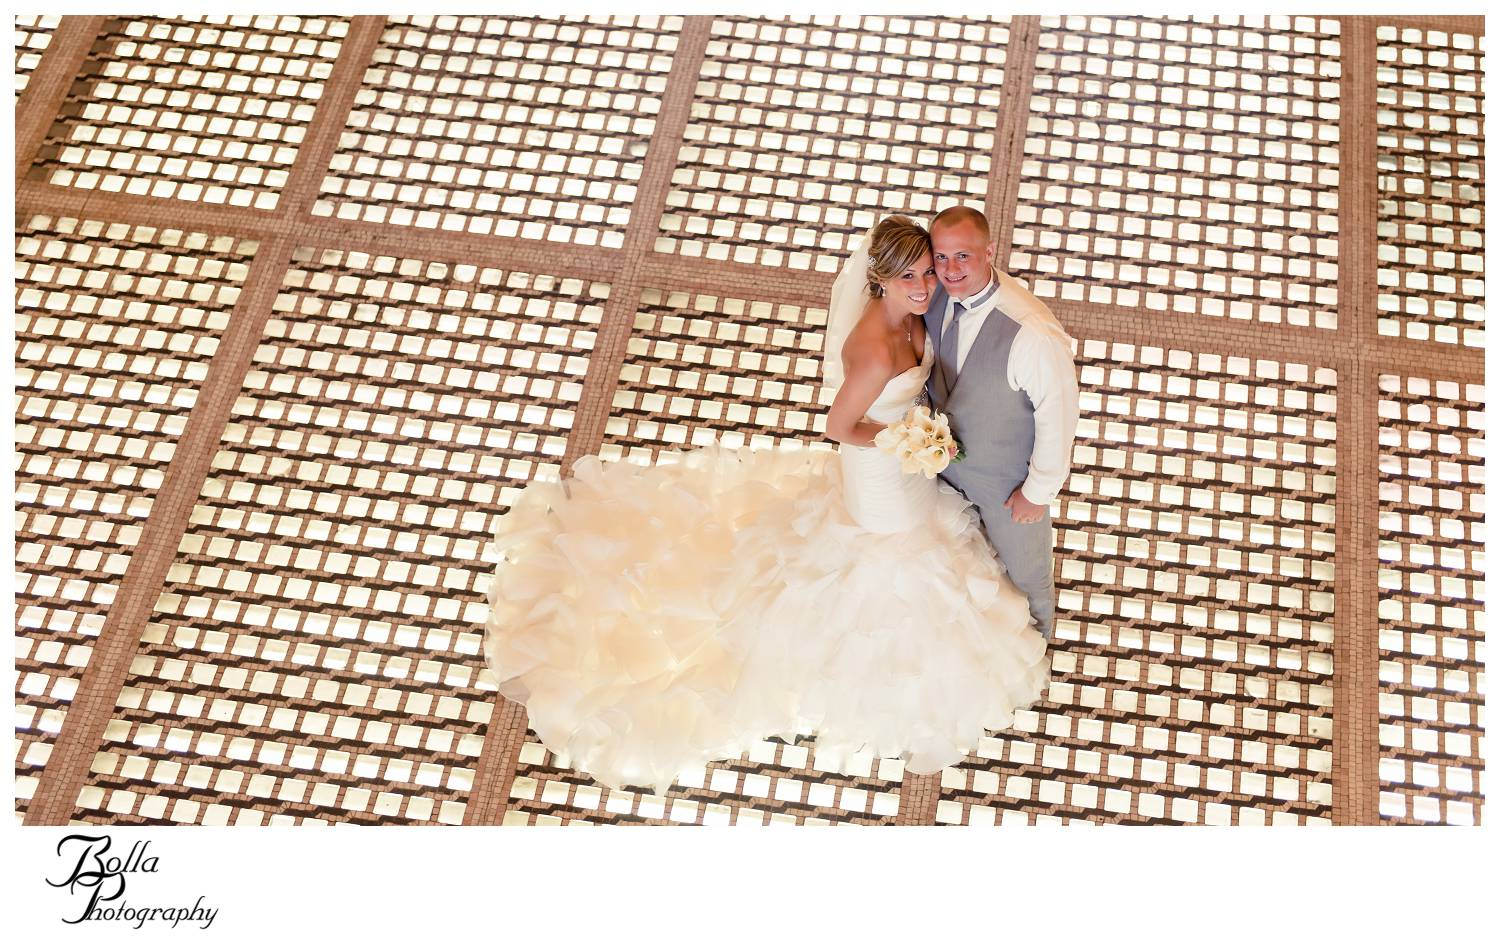 winner2_wedding-bride-groom-portrait-glass-block-floor-union-station-stl